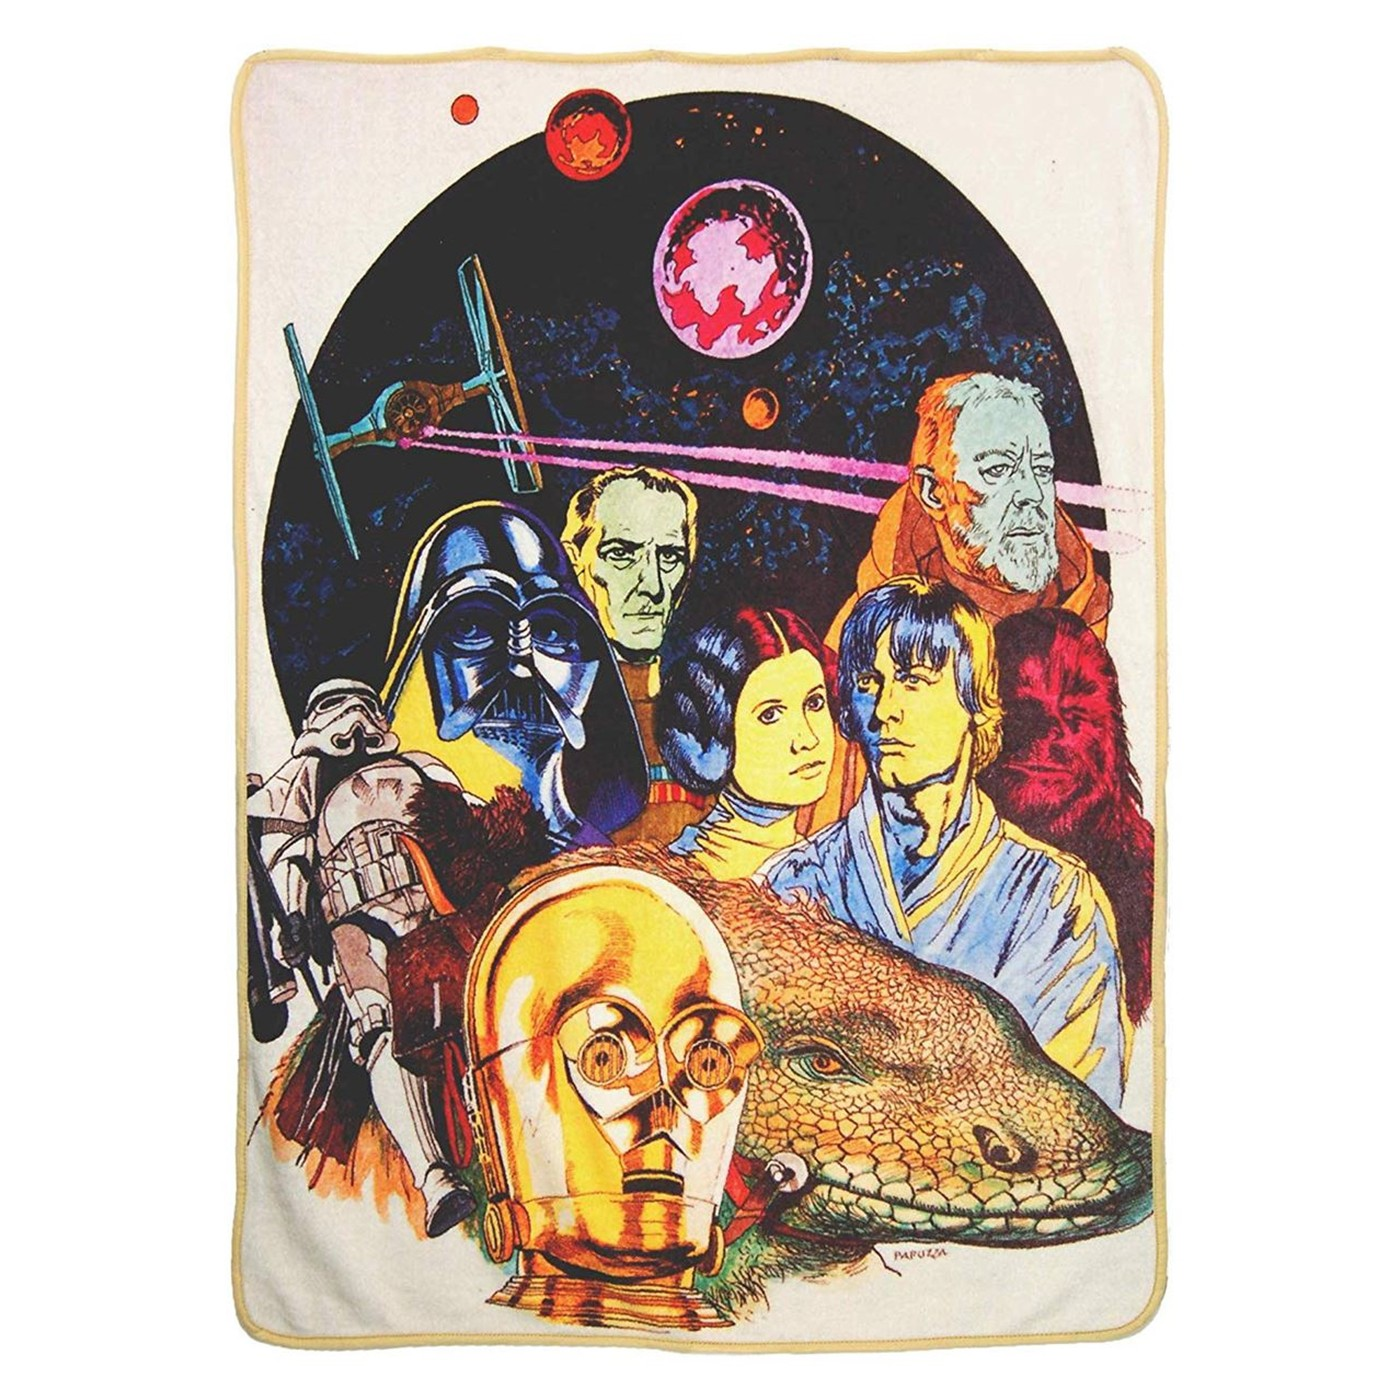 Star Wars Classic Retro Collage Blanket